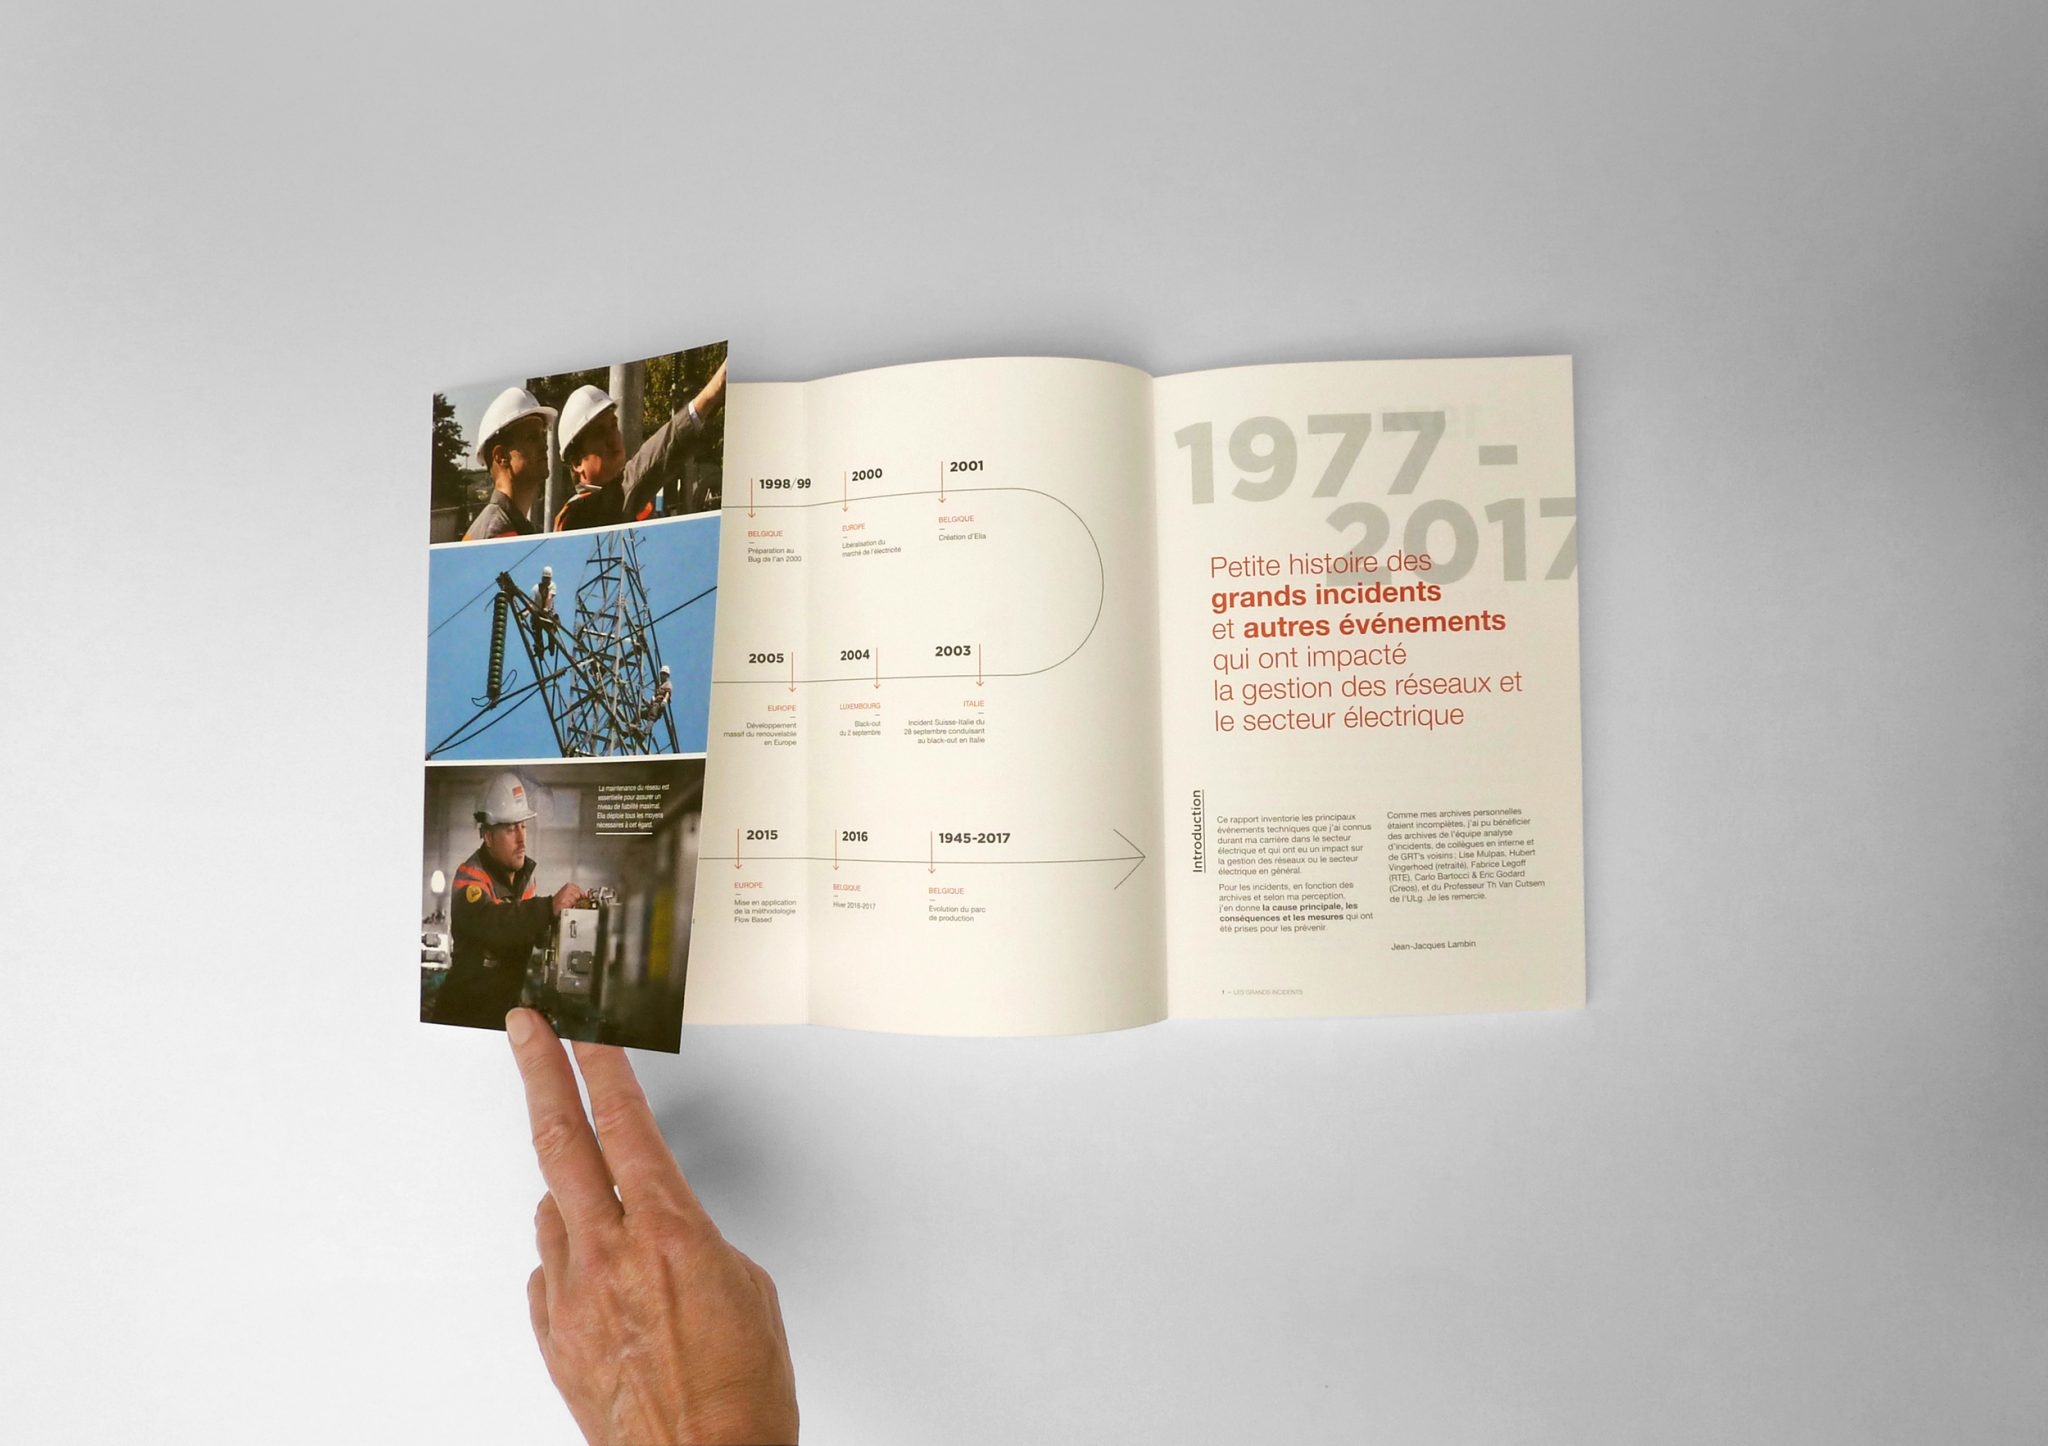 studio witvrouwen layout book design graphic design color visual identity